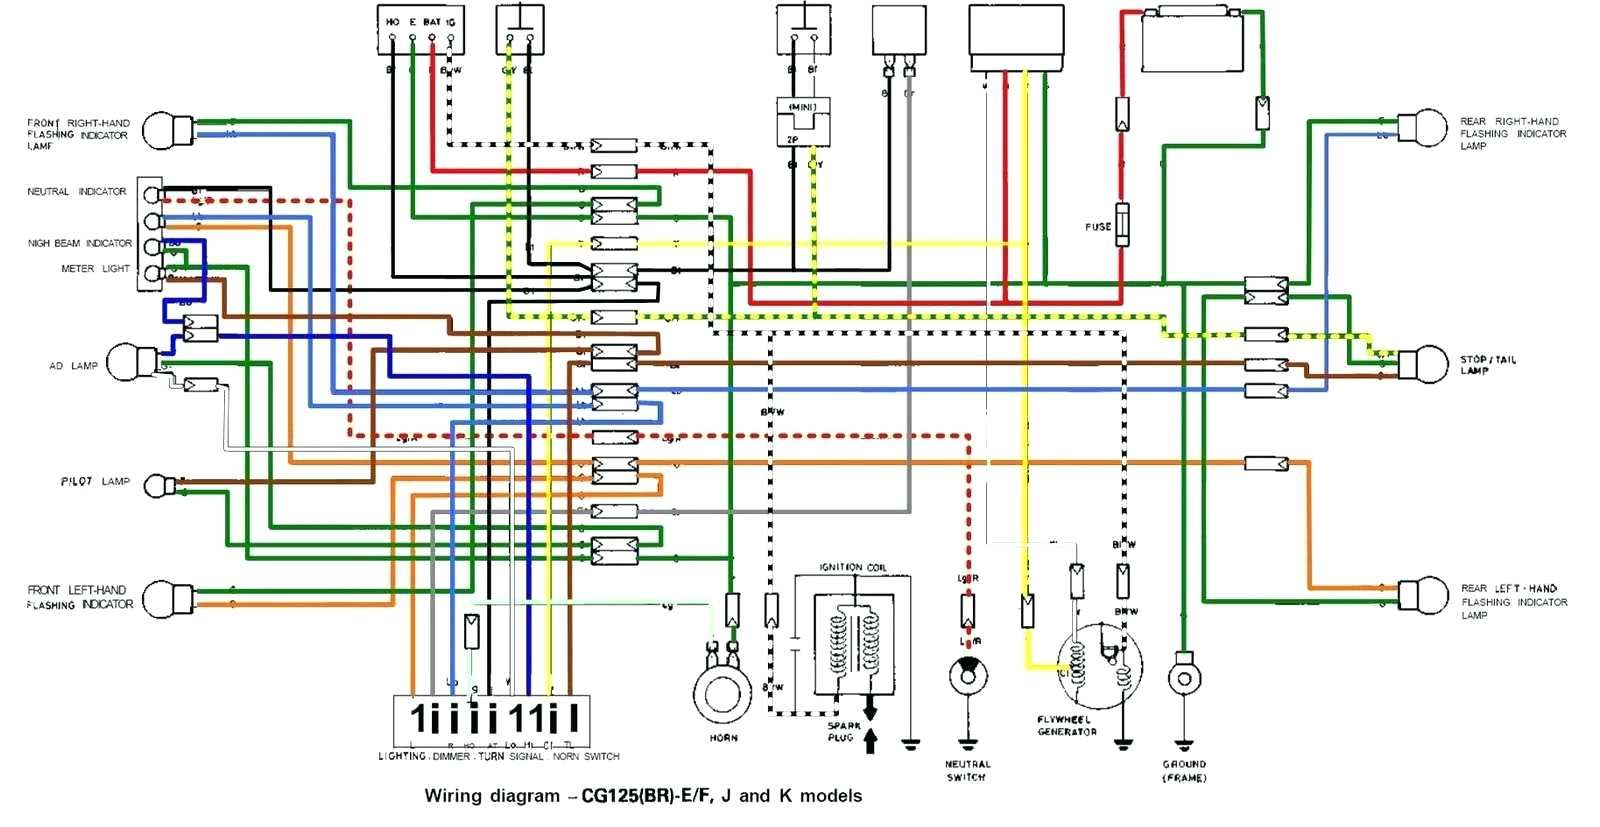 medium resolution of honda xrm 125 wiring diagram photography cheat sheets honda xrm signal light wiring honda xrm 125